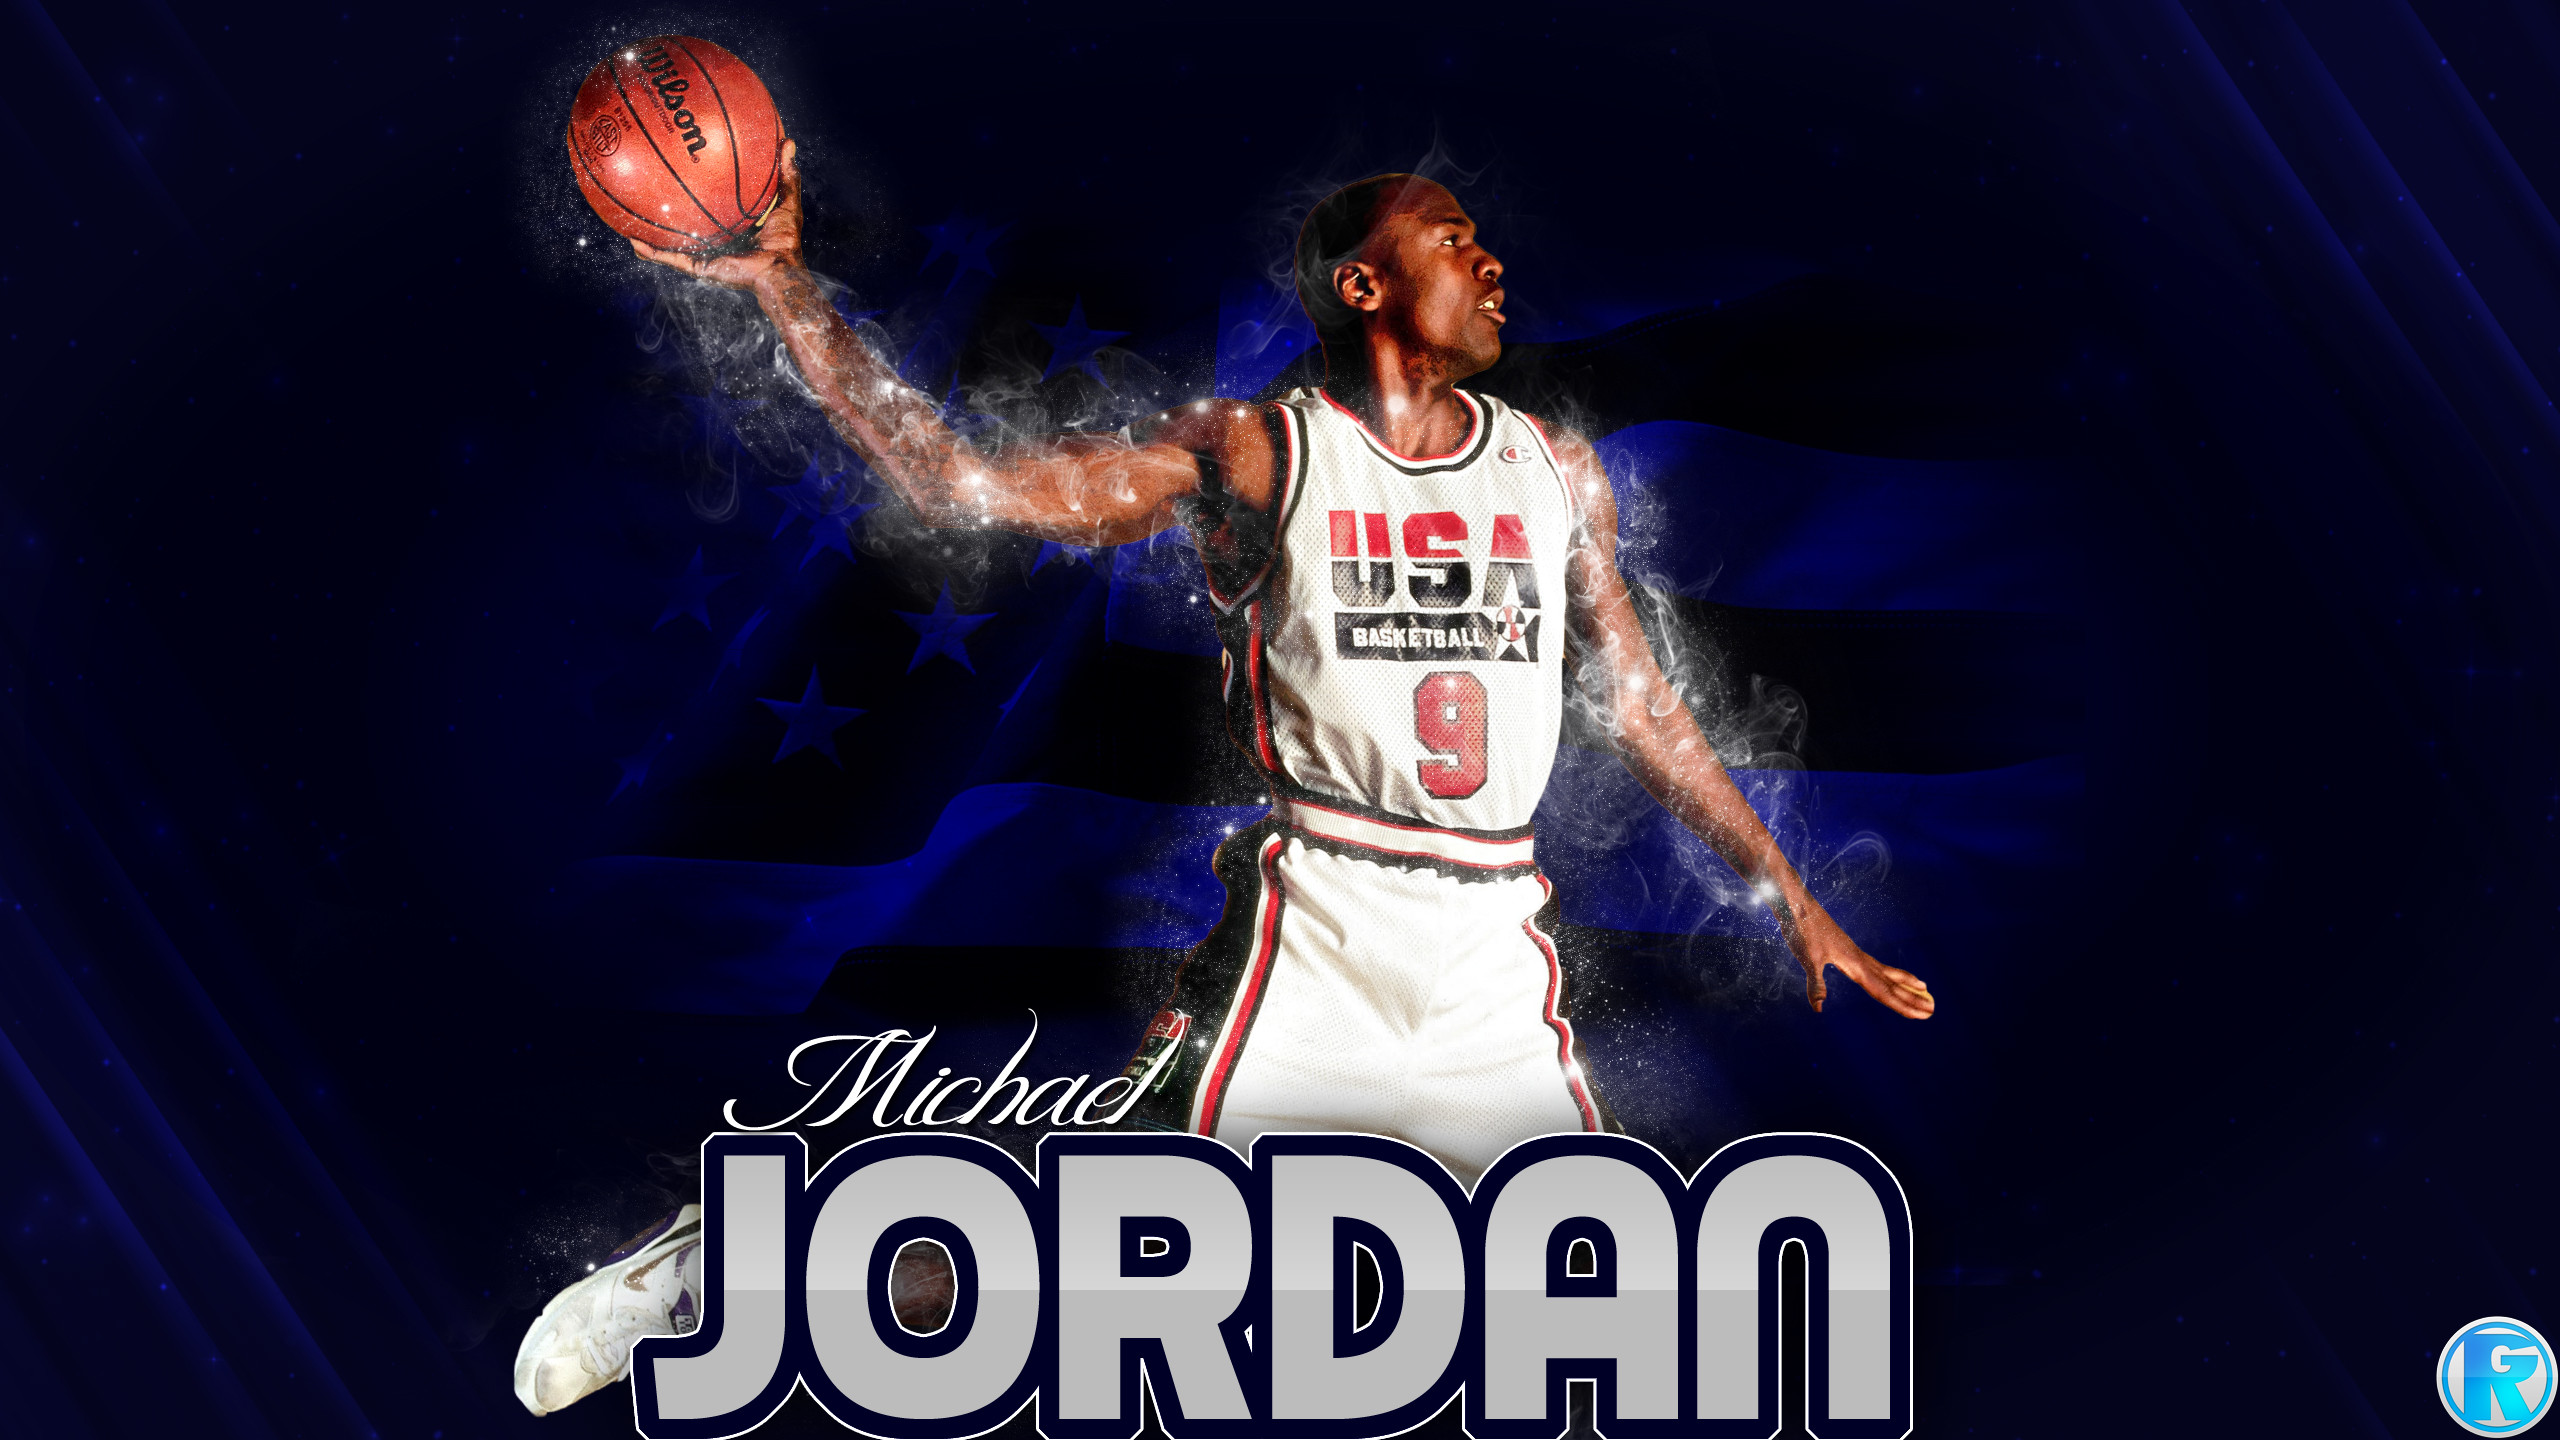 2560x1440 Michael Jordan Wallpaper Hd wallpaper